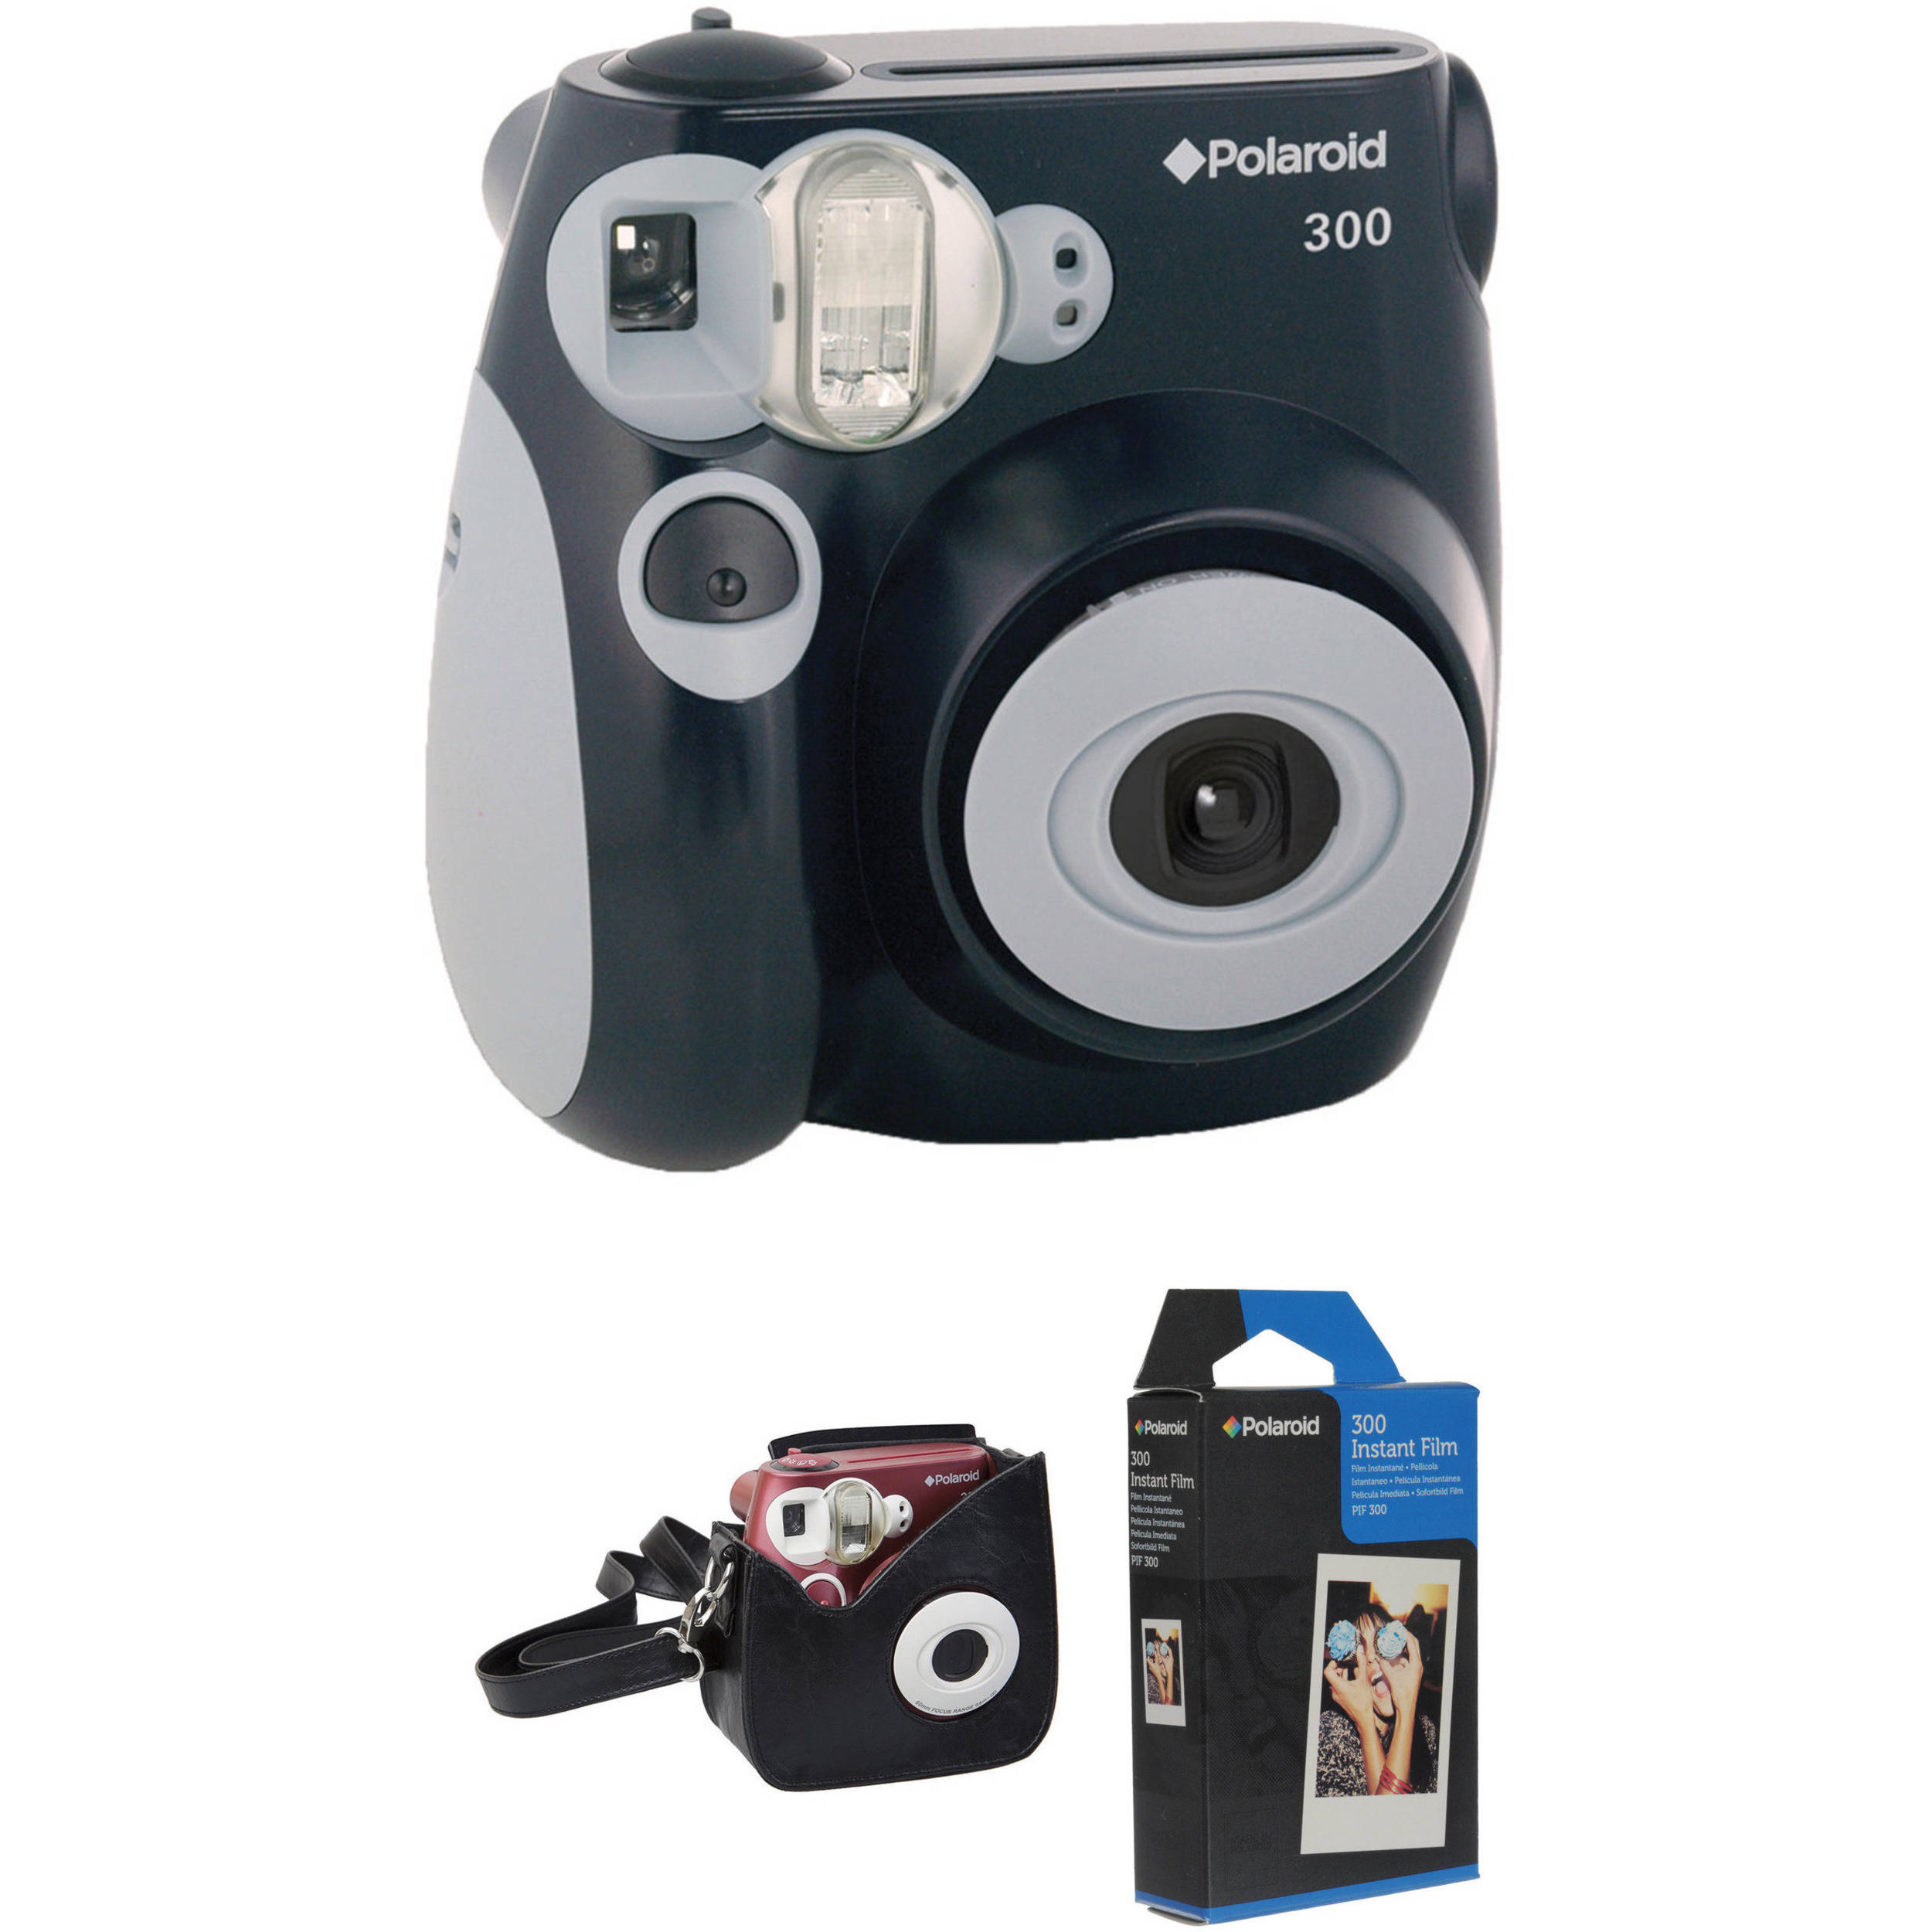 Polaroid 300 Instant Film Camera with Carrying Case and Film B&H